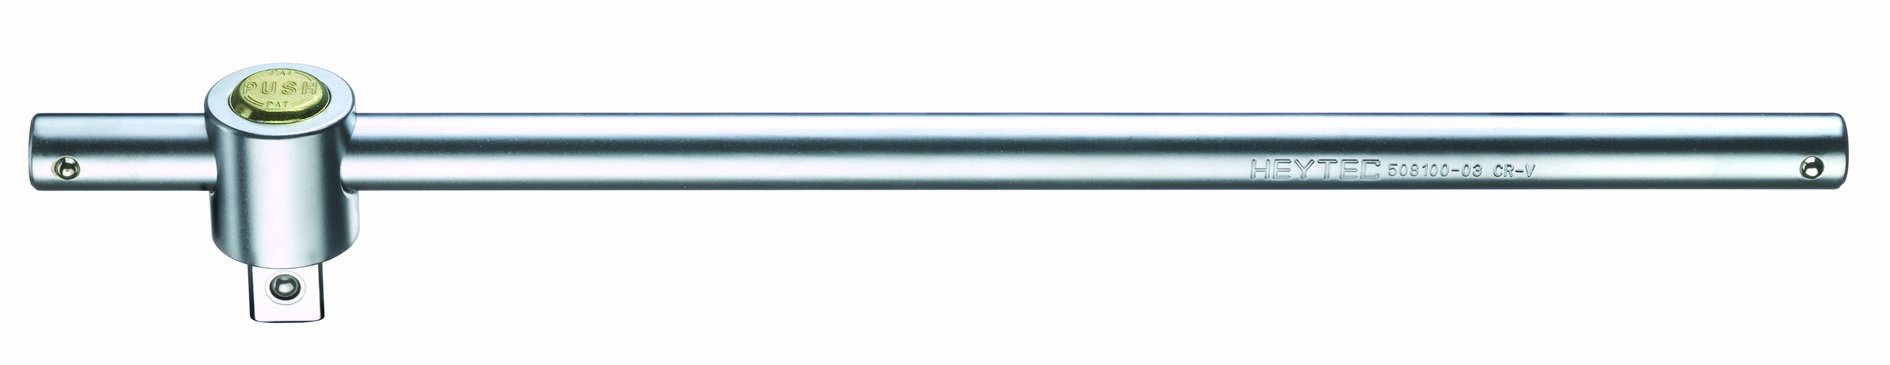 Heytec Heyco 50810003080 Extension Rail Sliding 3/4 Inch Length 450 Mm With Quick Closing System 508100-03